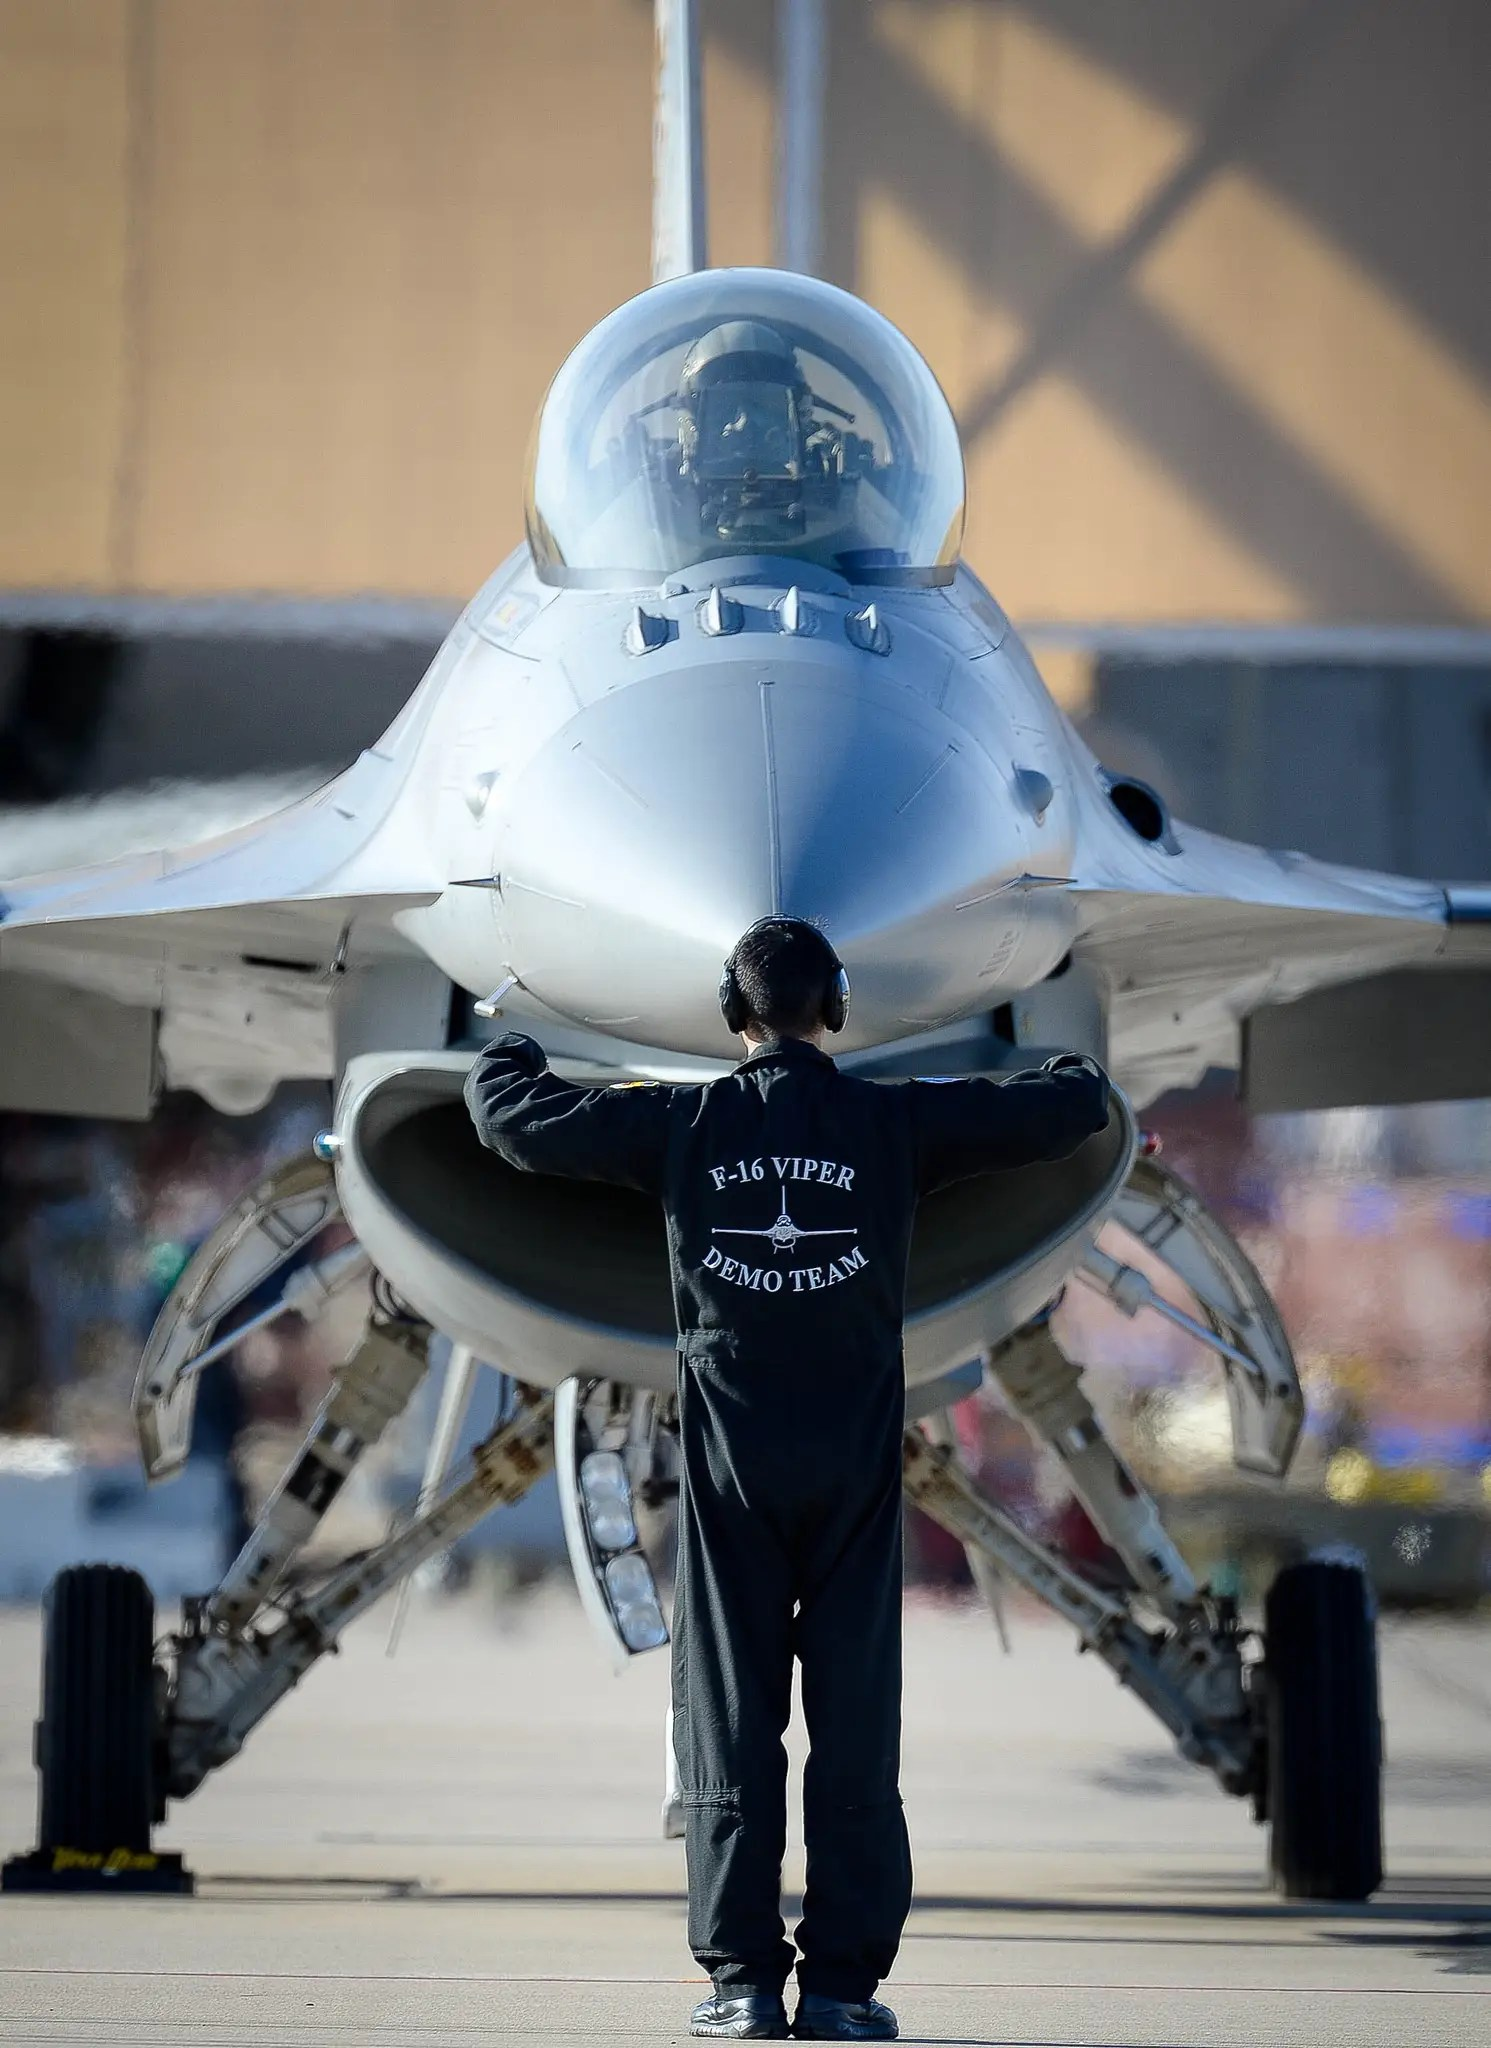 An F-16 gets ready to join the formation.